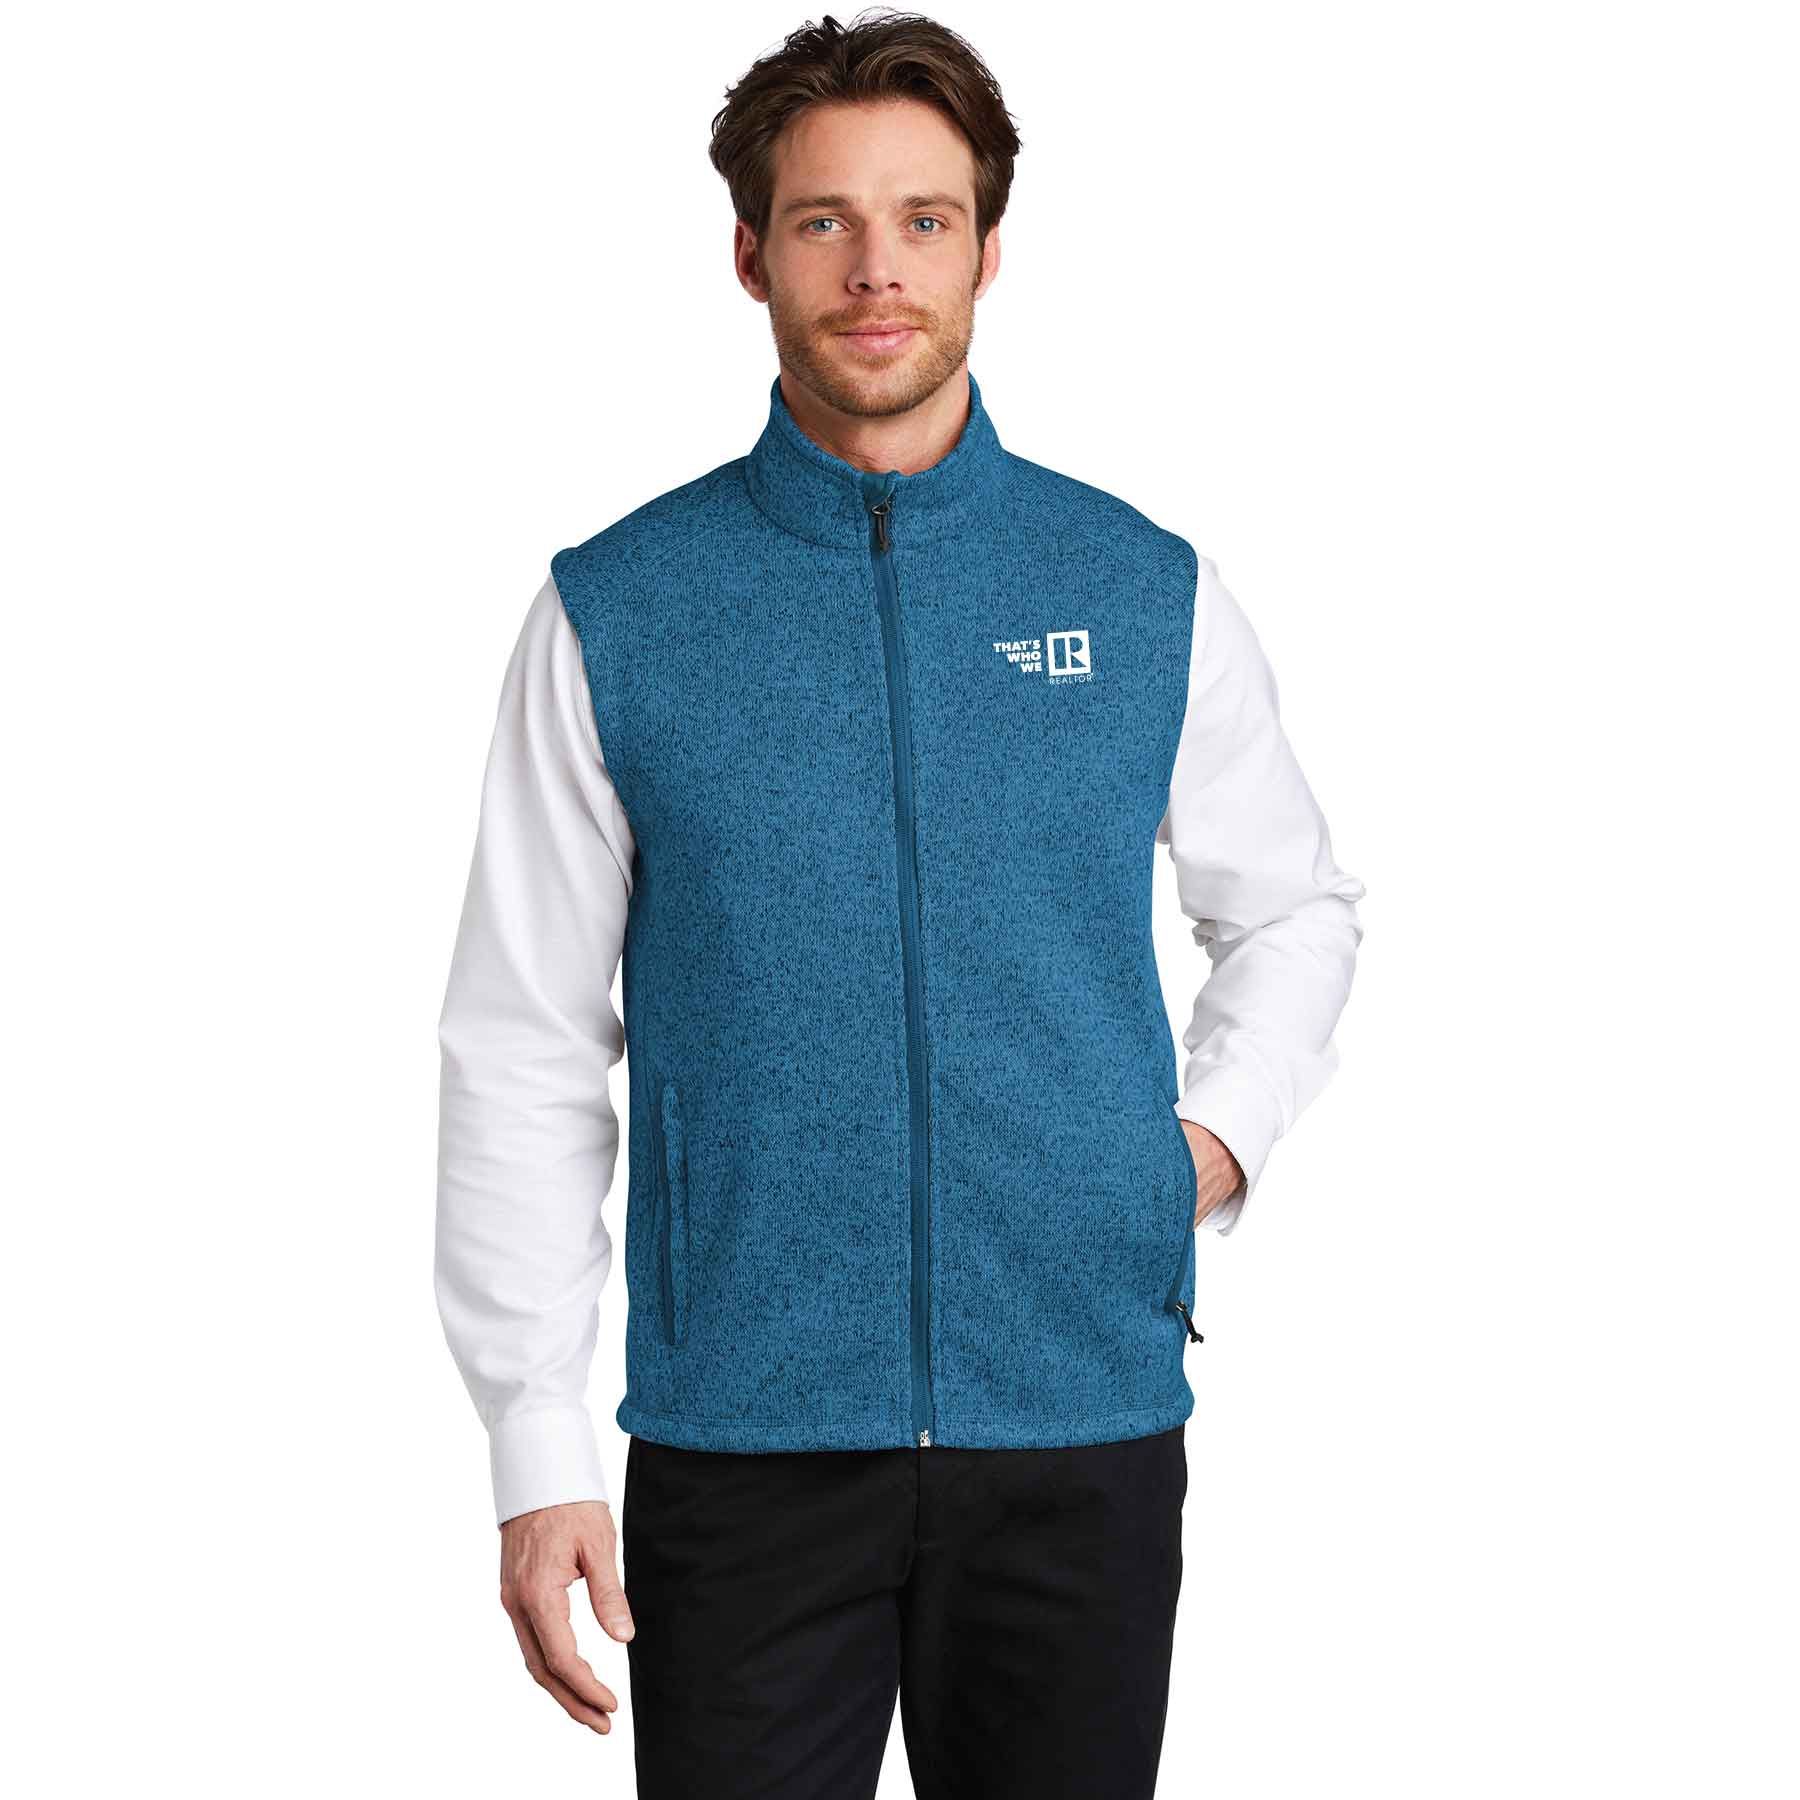 """Thats Who We R"" Mens Sweater Vest twwr,ThatsWhoWeR,Thats,TWWR,ThatWho,ThatsWho,Twwr,Thats,Whos,We,Ares,Twwr,Thats,Whos,Wes,Ares,soft, shells, vests, mens"